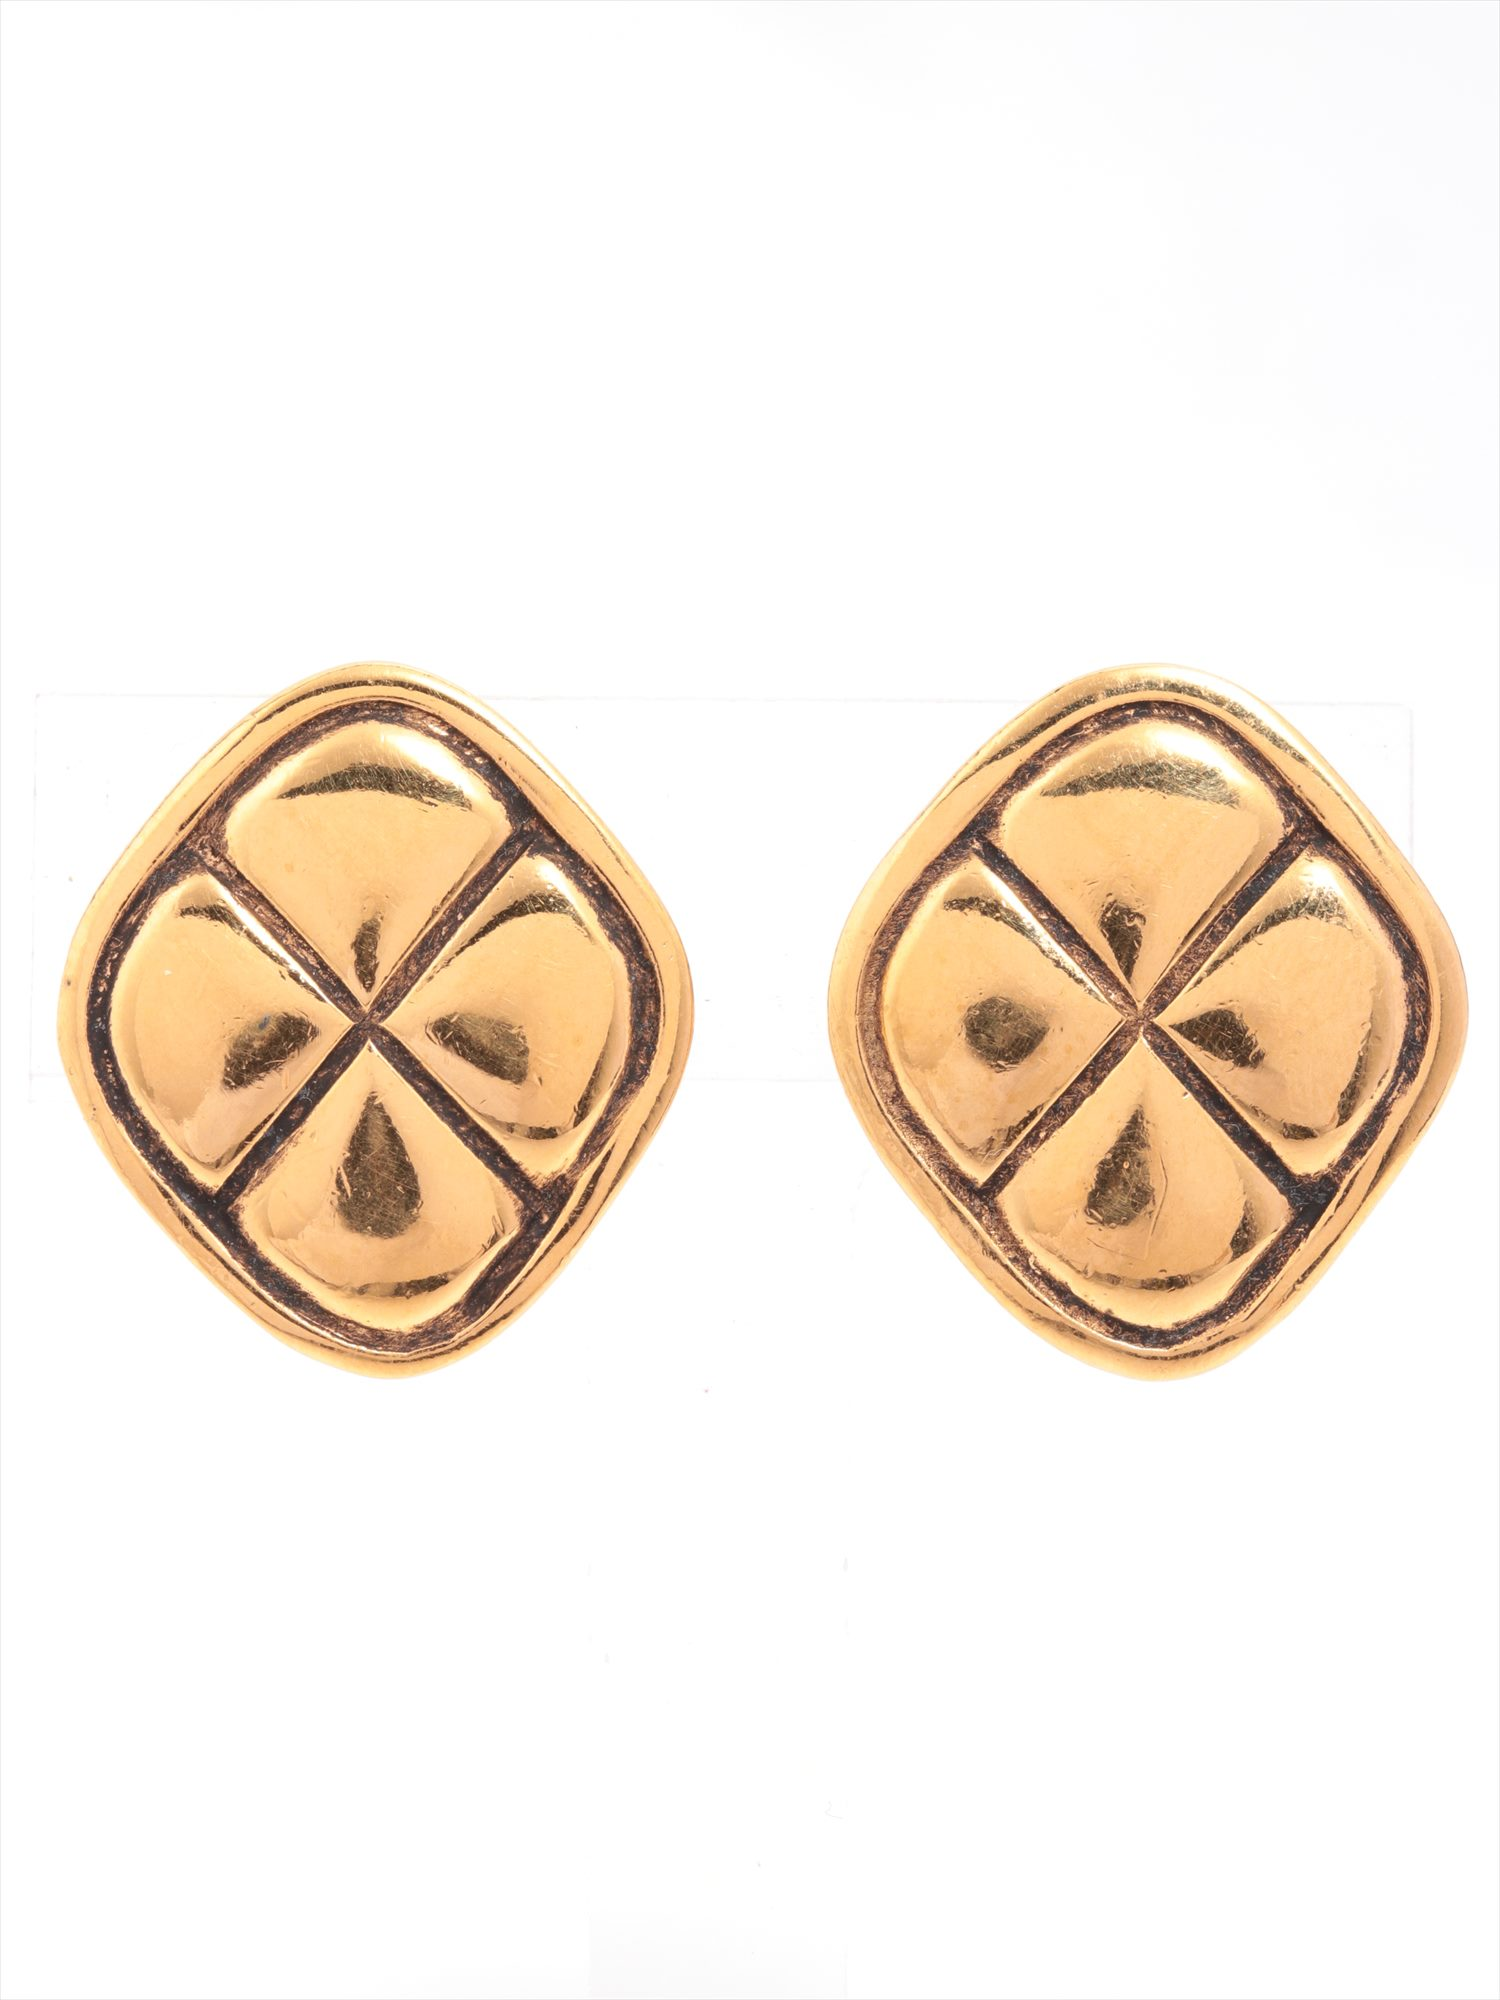 [Used goods] Chanel Matorasse earrings (for both ears) GP Gold